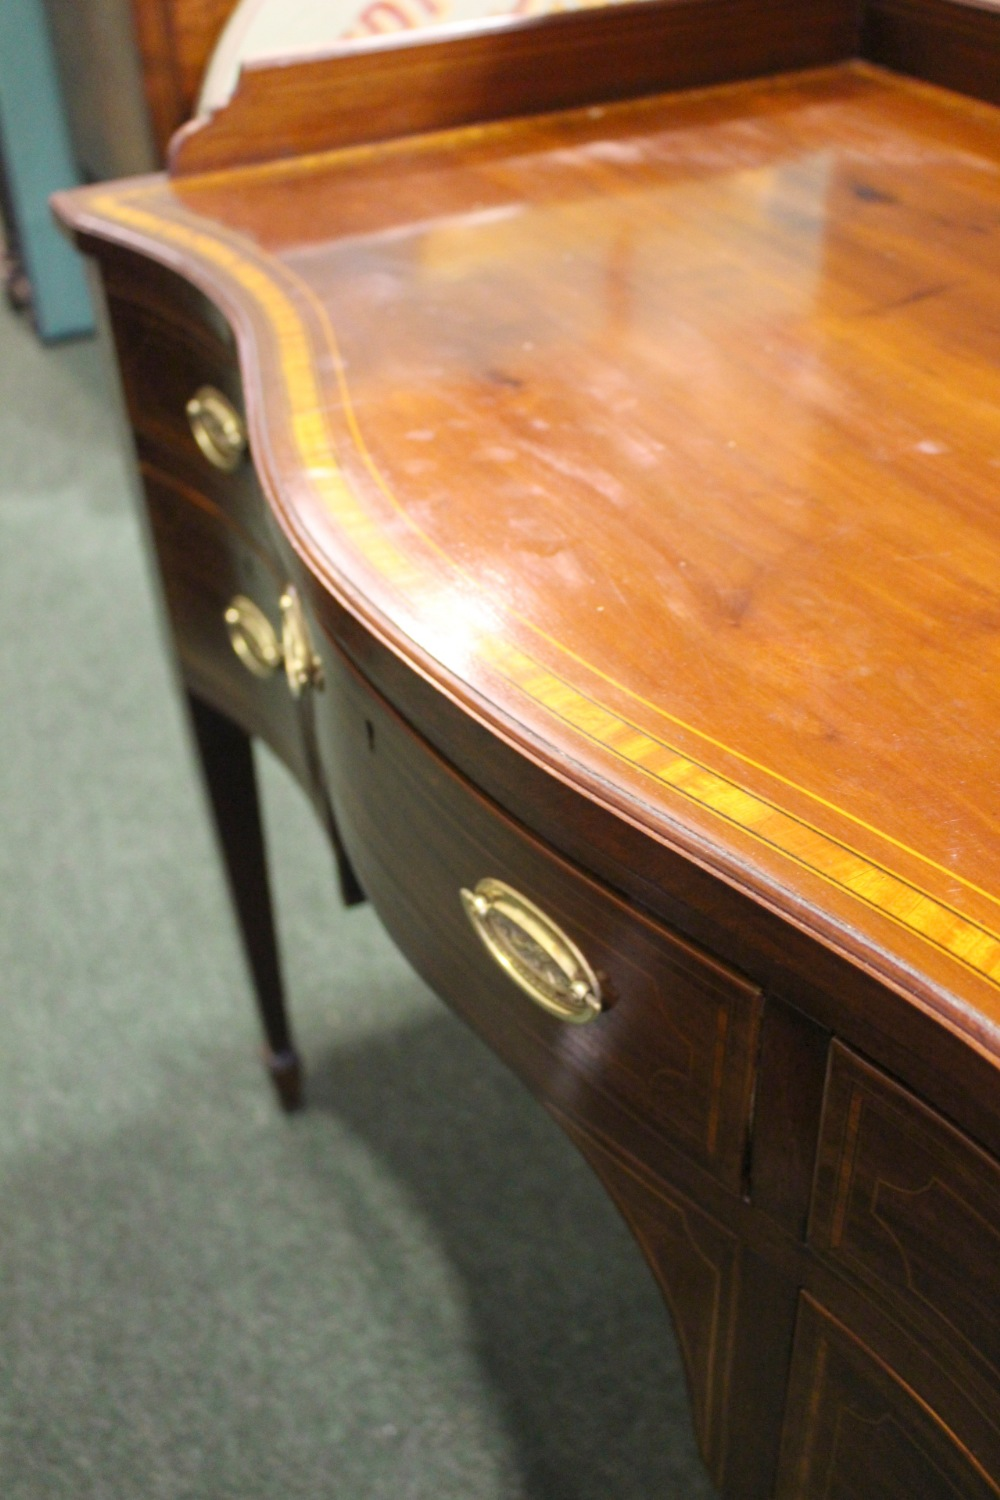 Lot 60 - A VERY FINE SERPENTINE SHAPED SIDE BOARD, with 5 drawers, canted front corners, raised on tapering